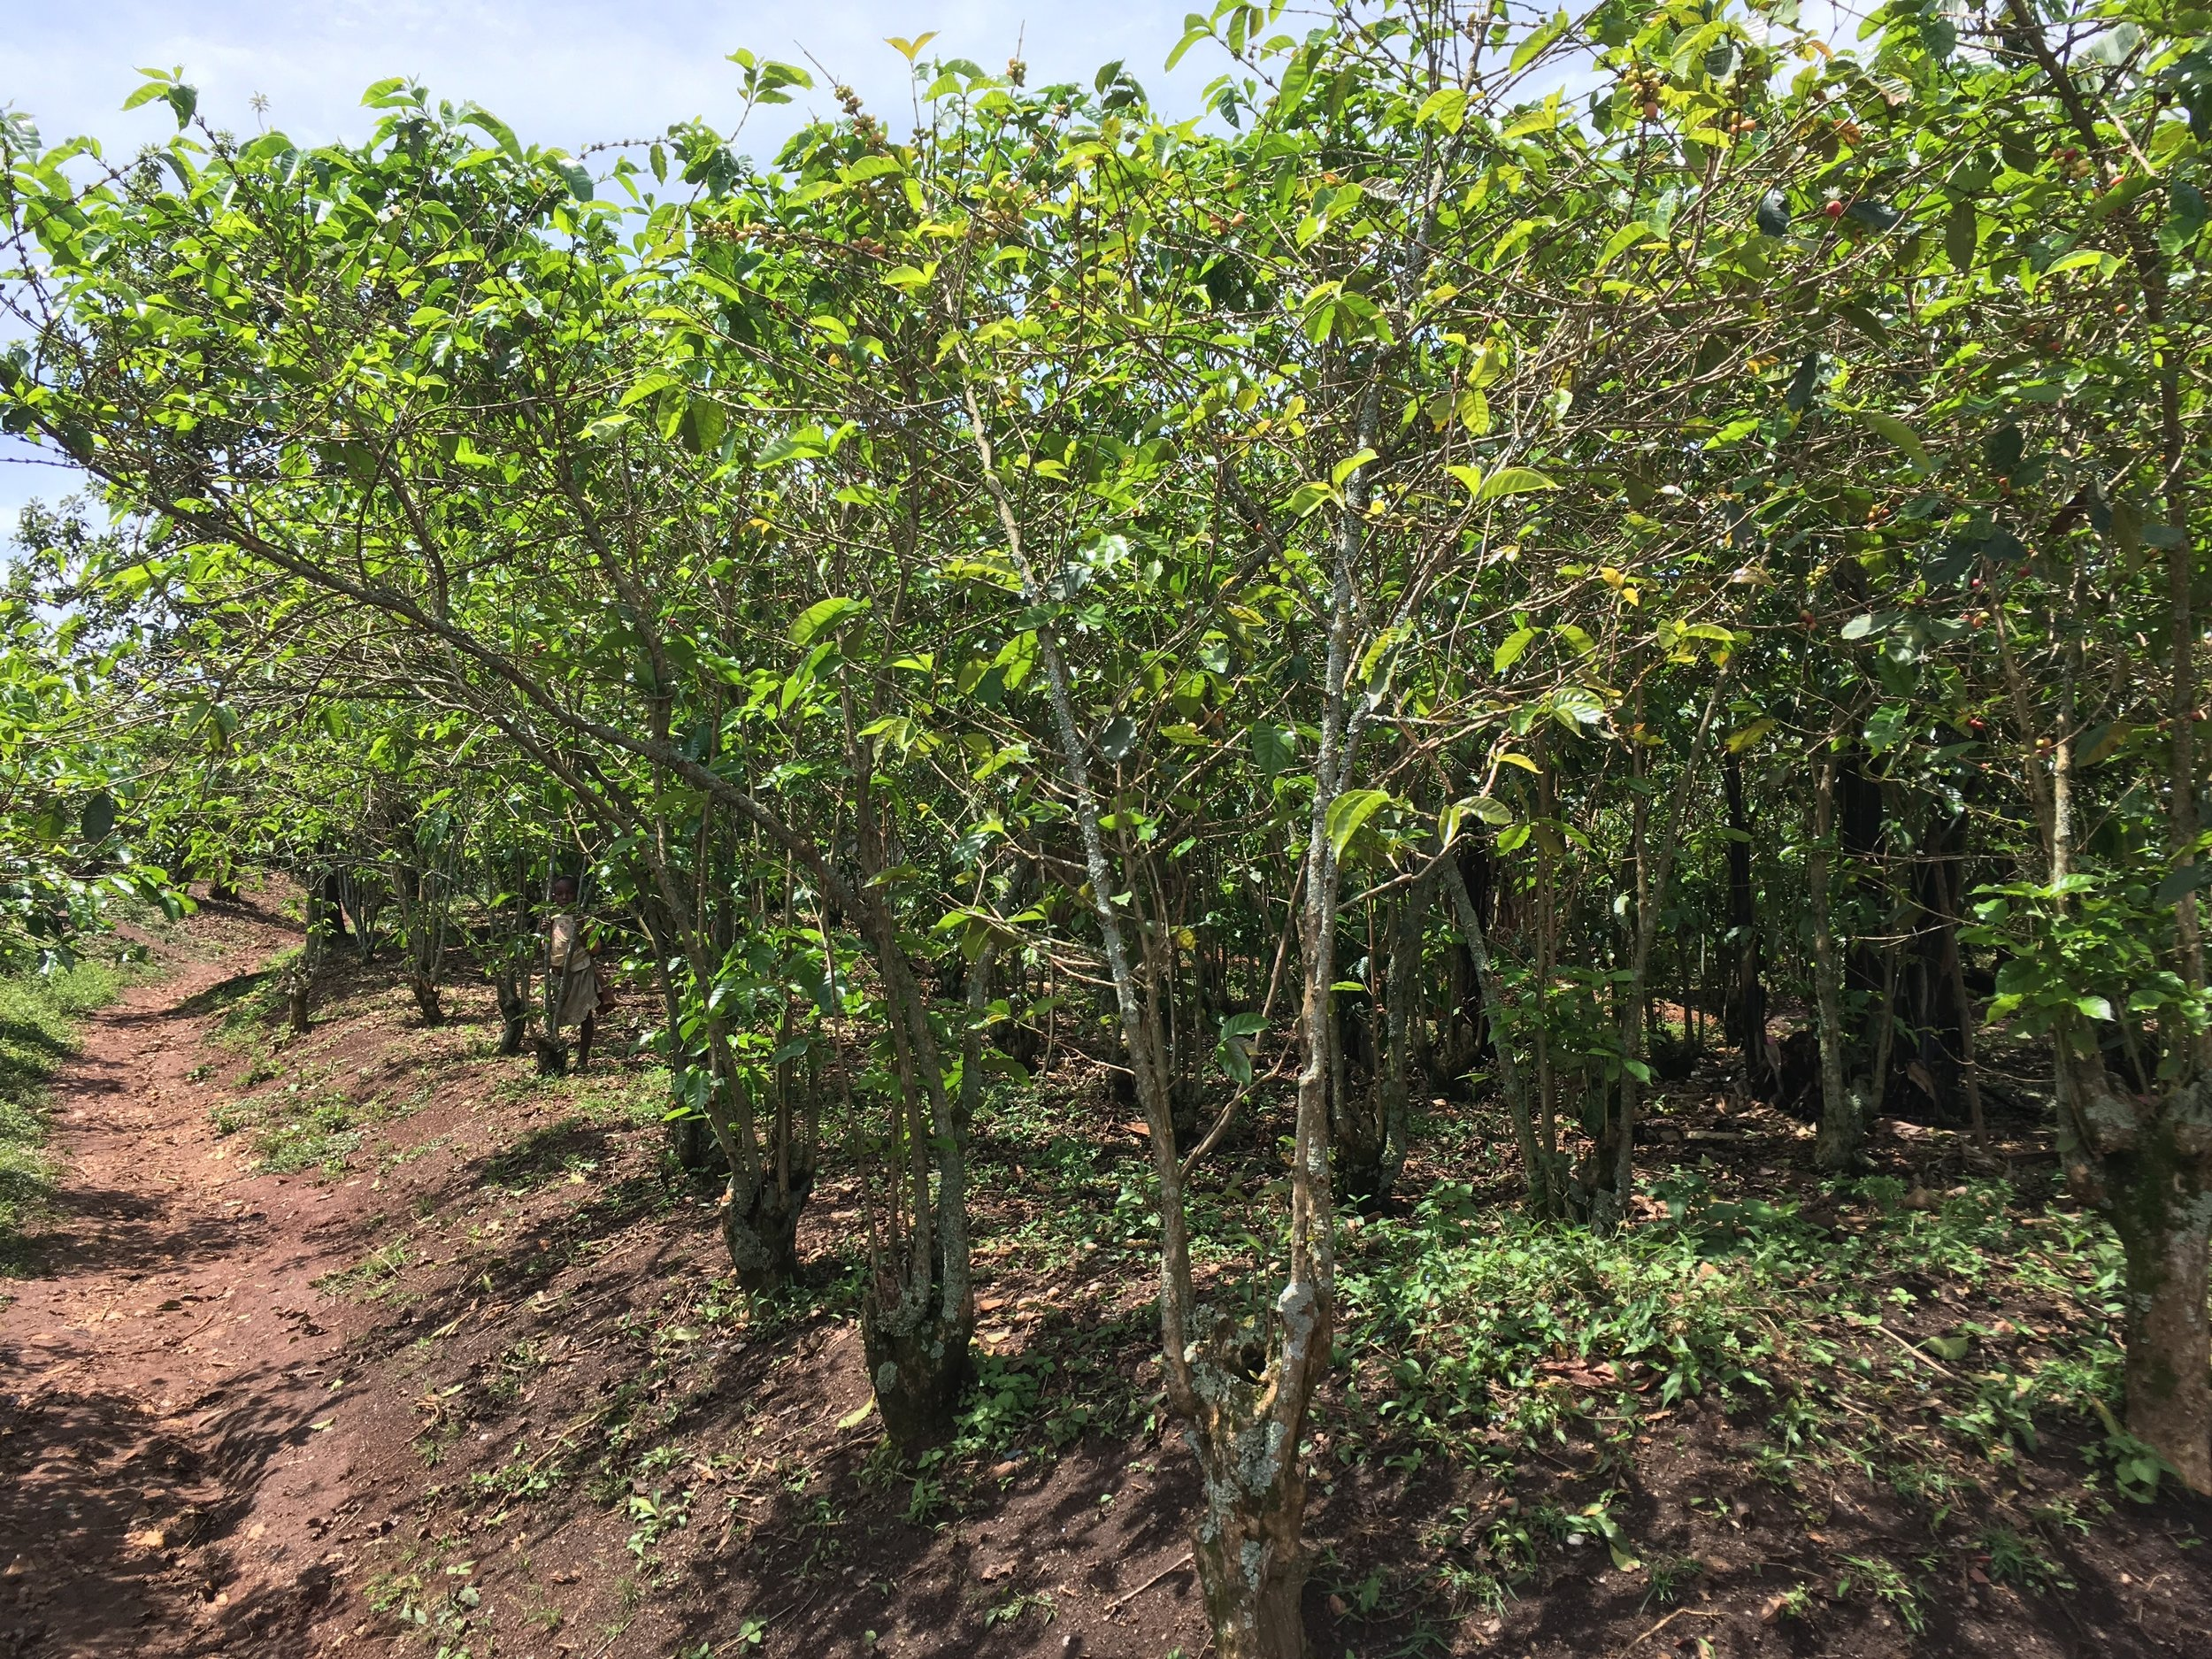 The age of Idjwi's coffee trees is apparent when seeing the girth of these trunks. Some of them are older than 50 years and manage to stay healthy on a wholly organic diet...